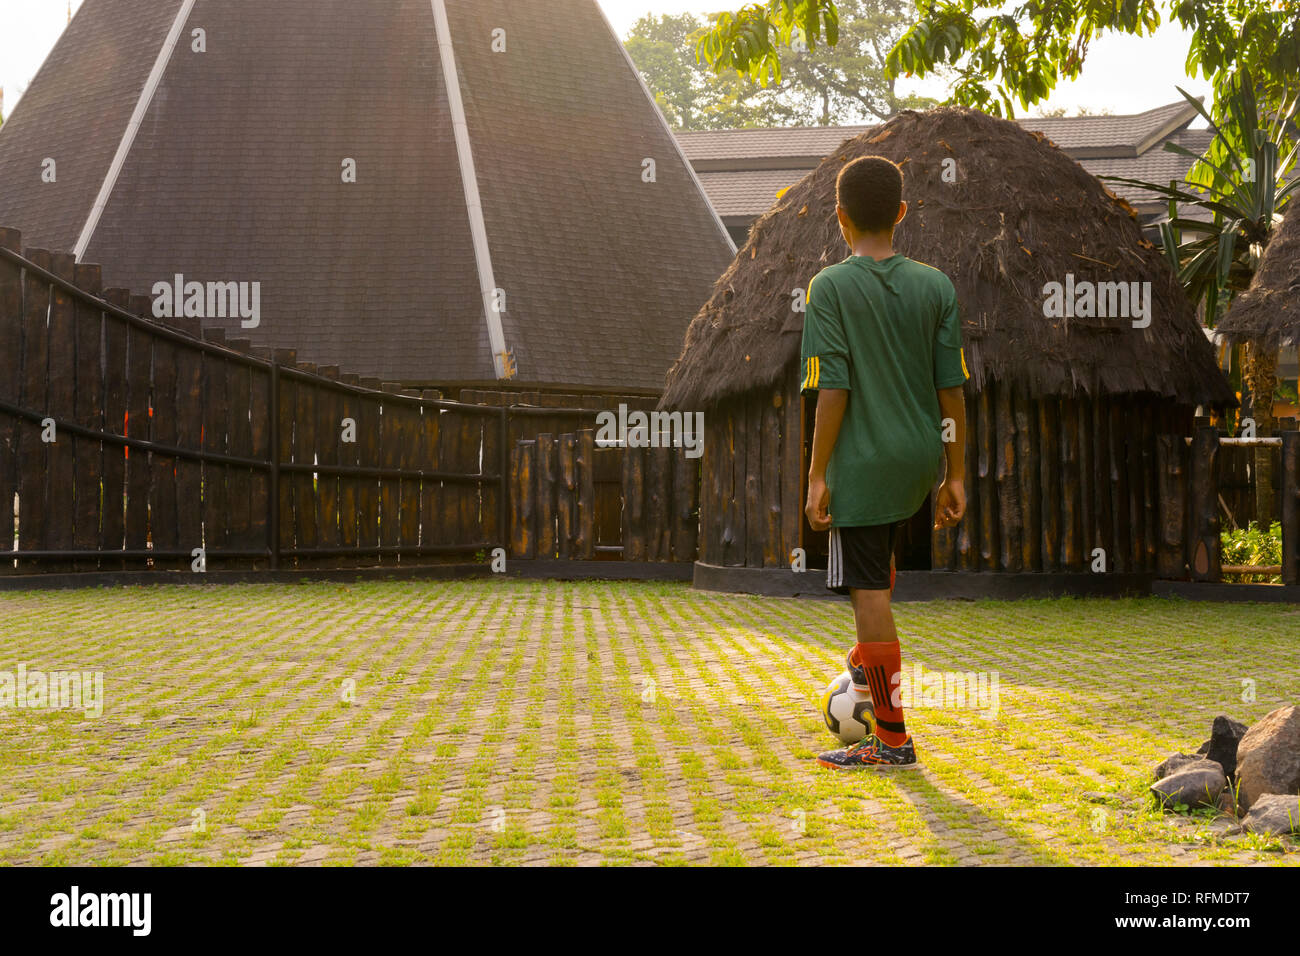 8.39, Papuan Boy, IndonesianBook - Stock Image